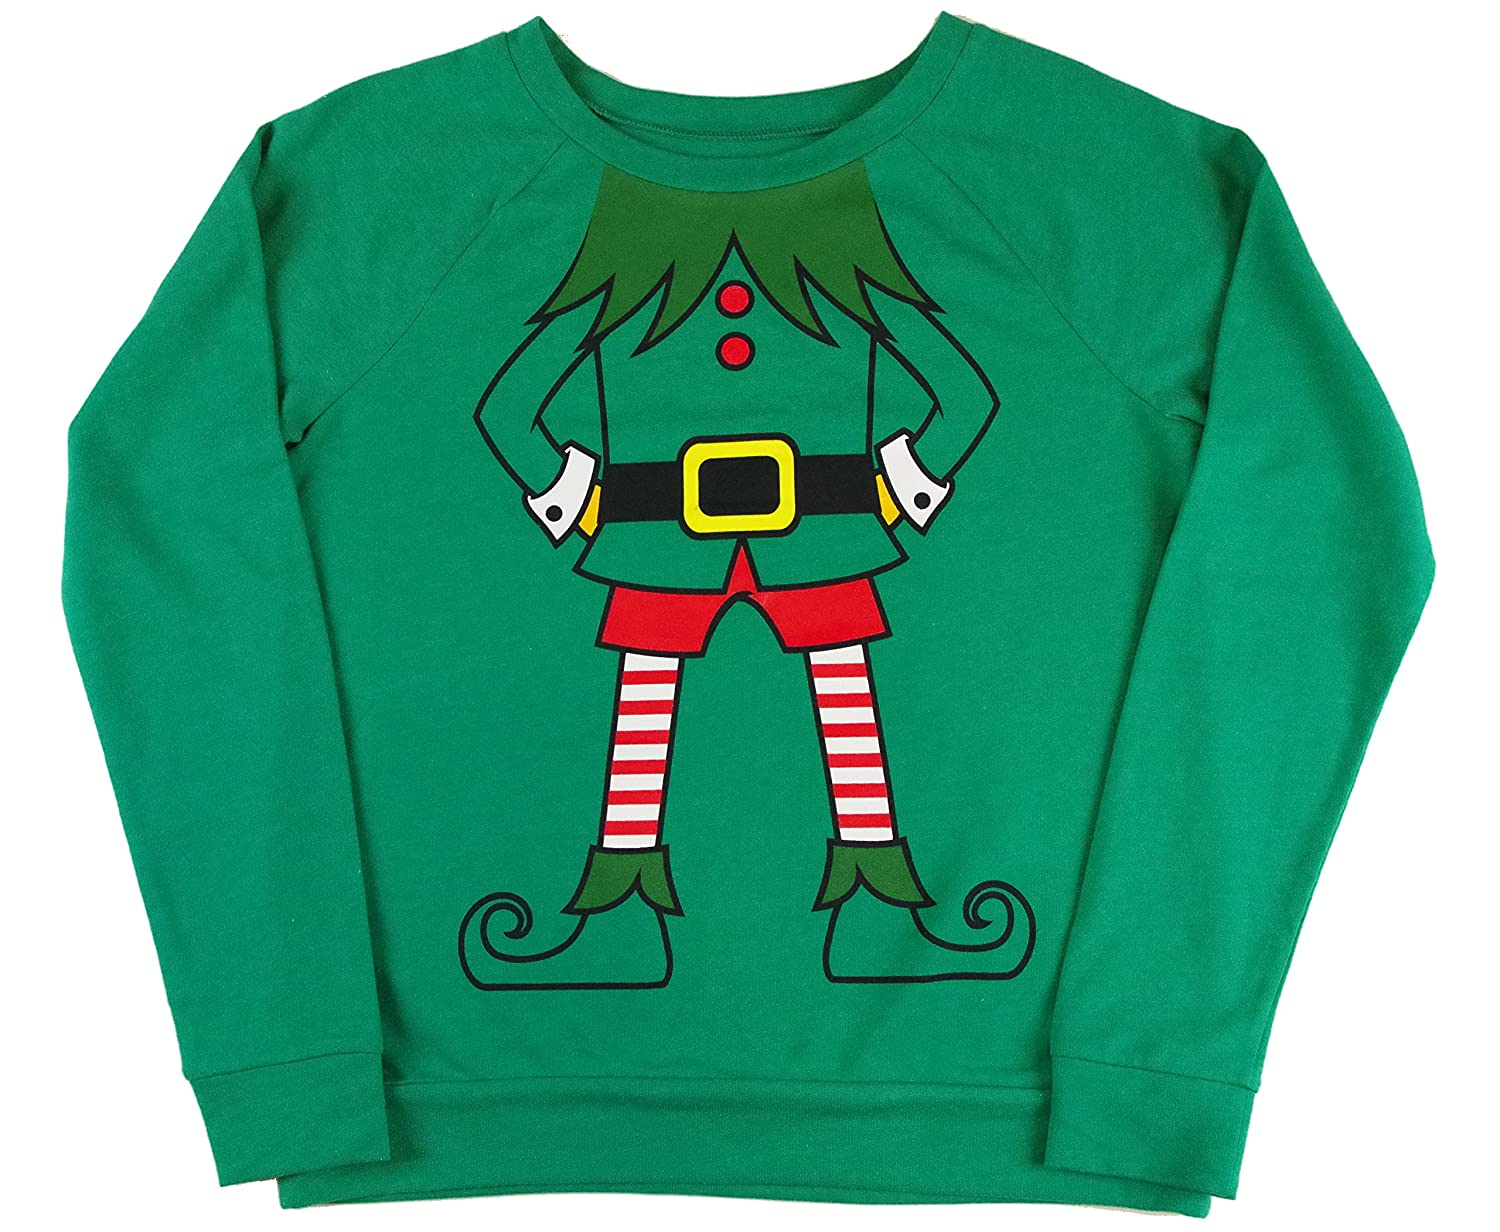 Elf Christmas Sweatshirt, FunNo Head Design, Juniors Sizes